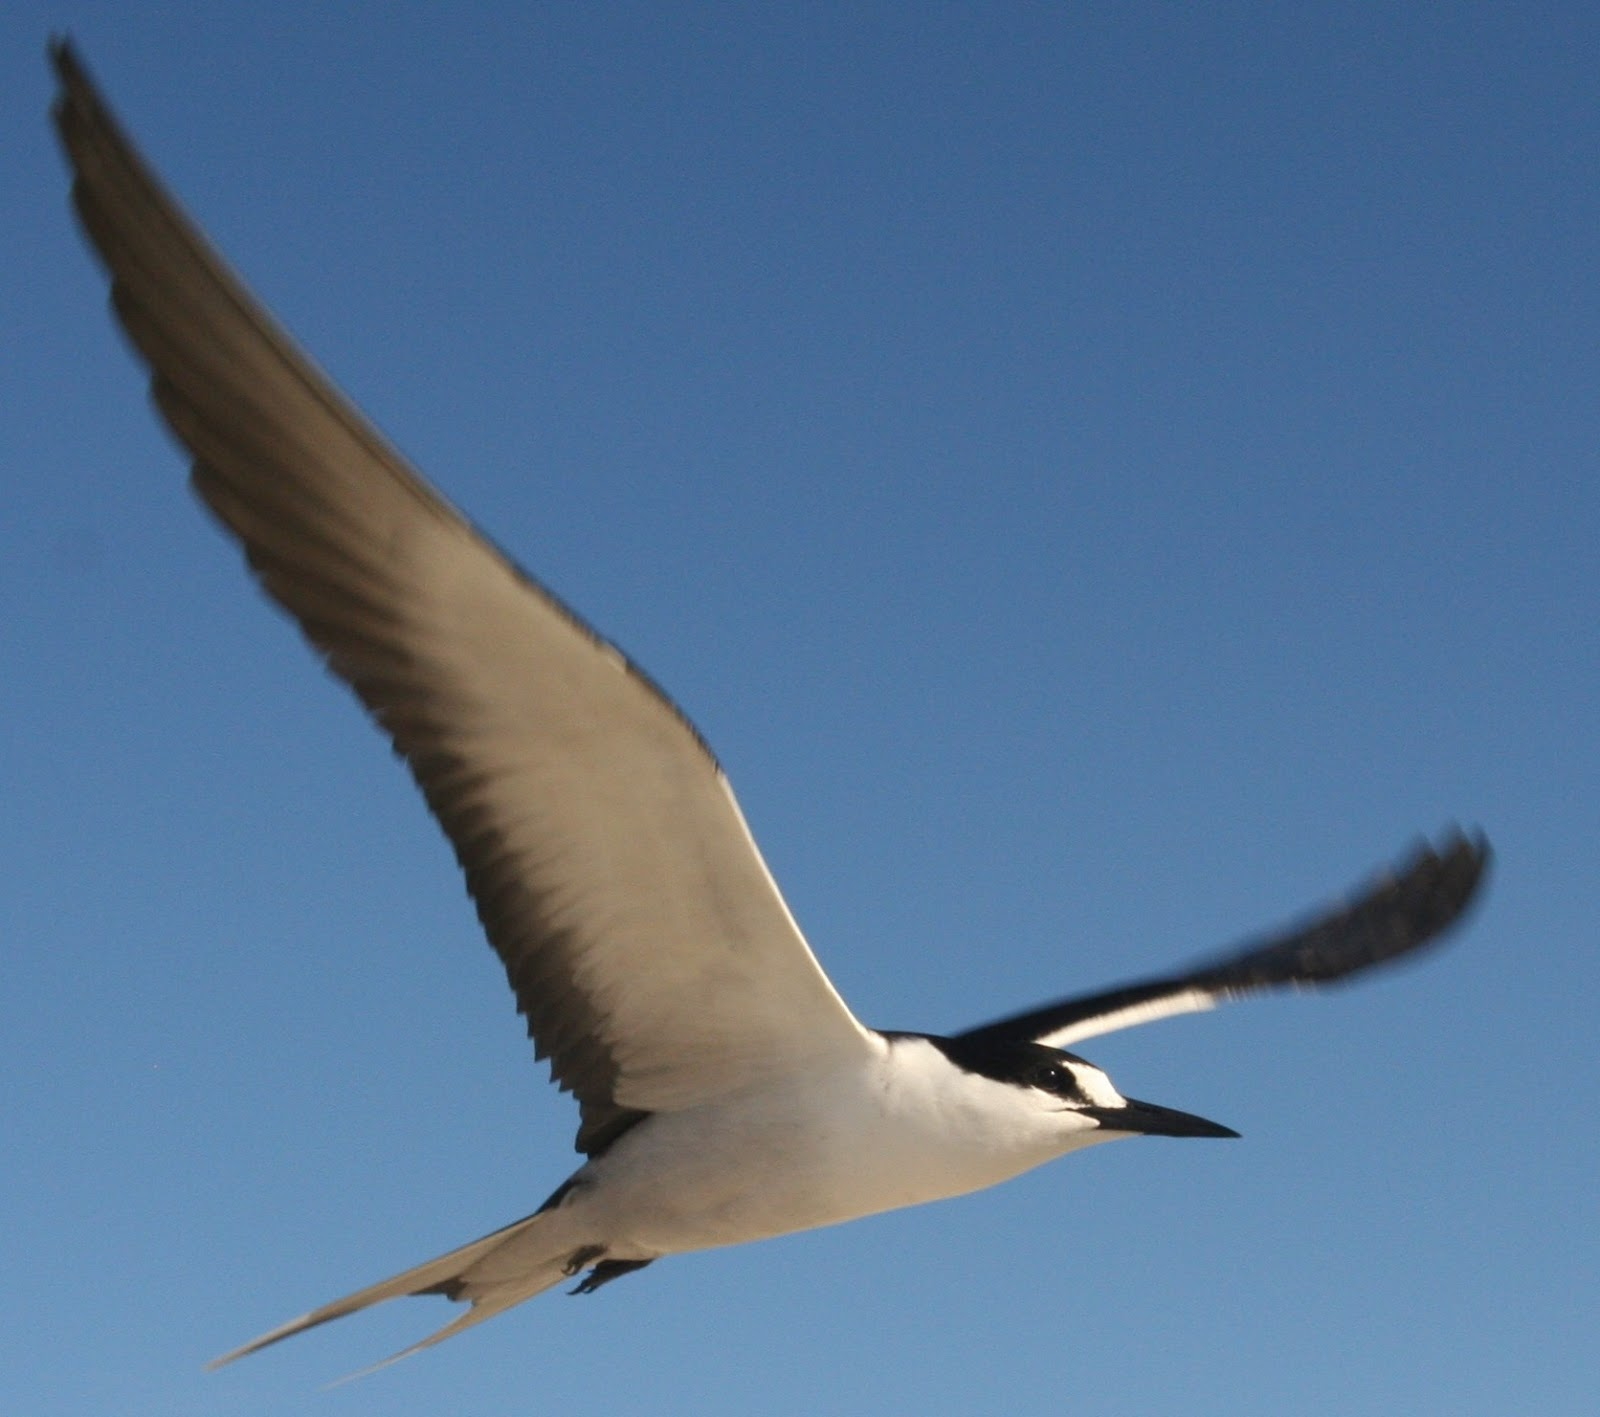 An image of a sooty tern bird flying.